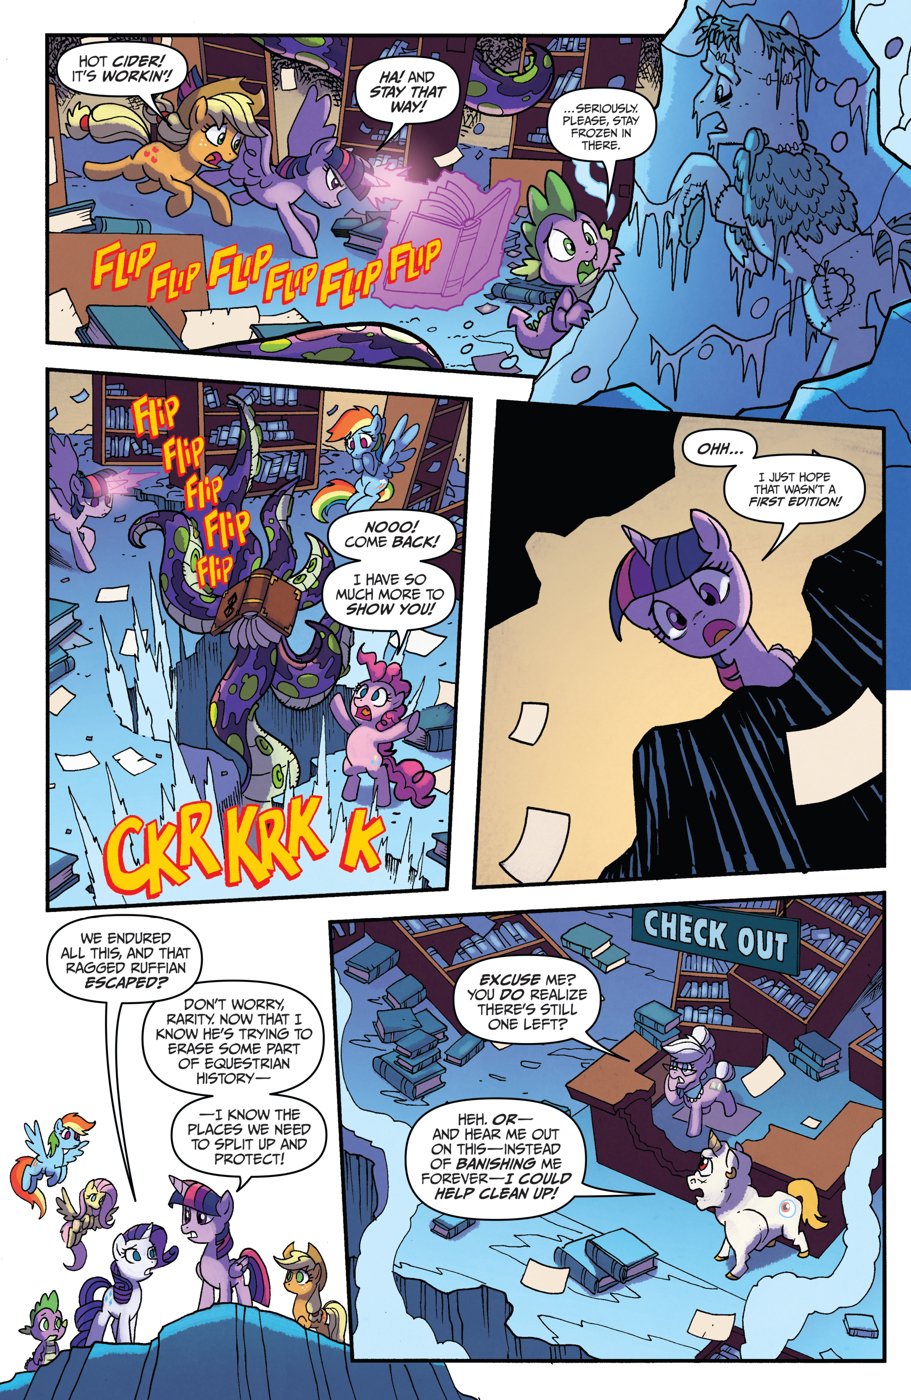 Read online My Little Pony: Friendship is Magic comic -  Issue #52 - 9